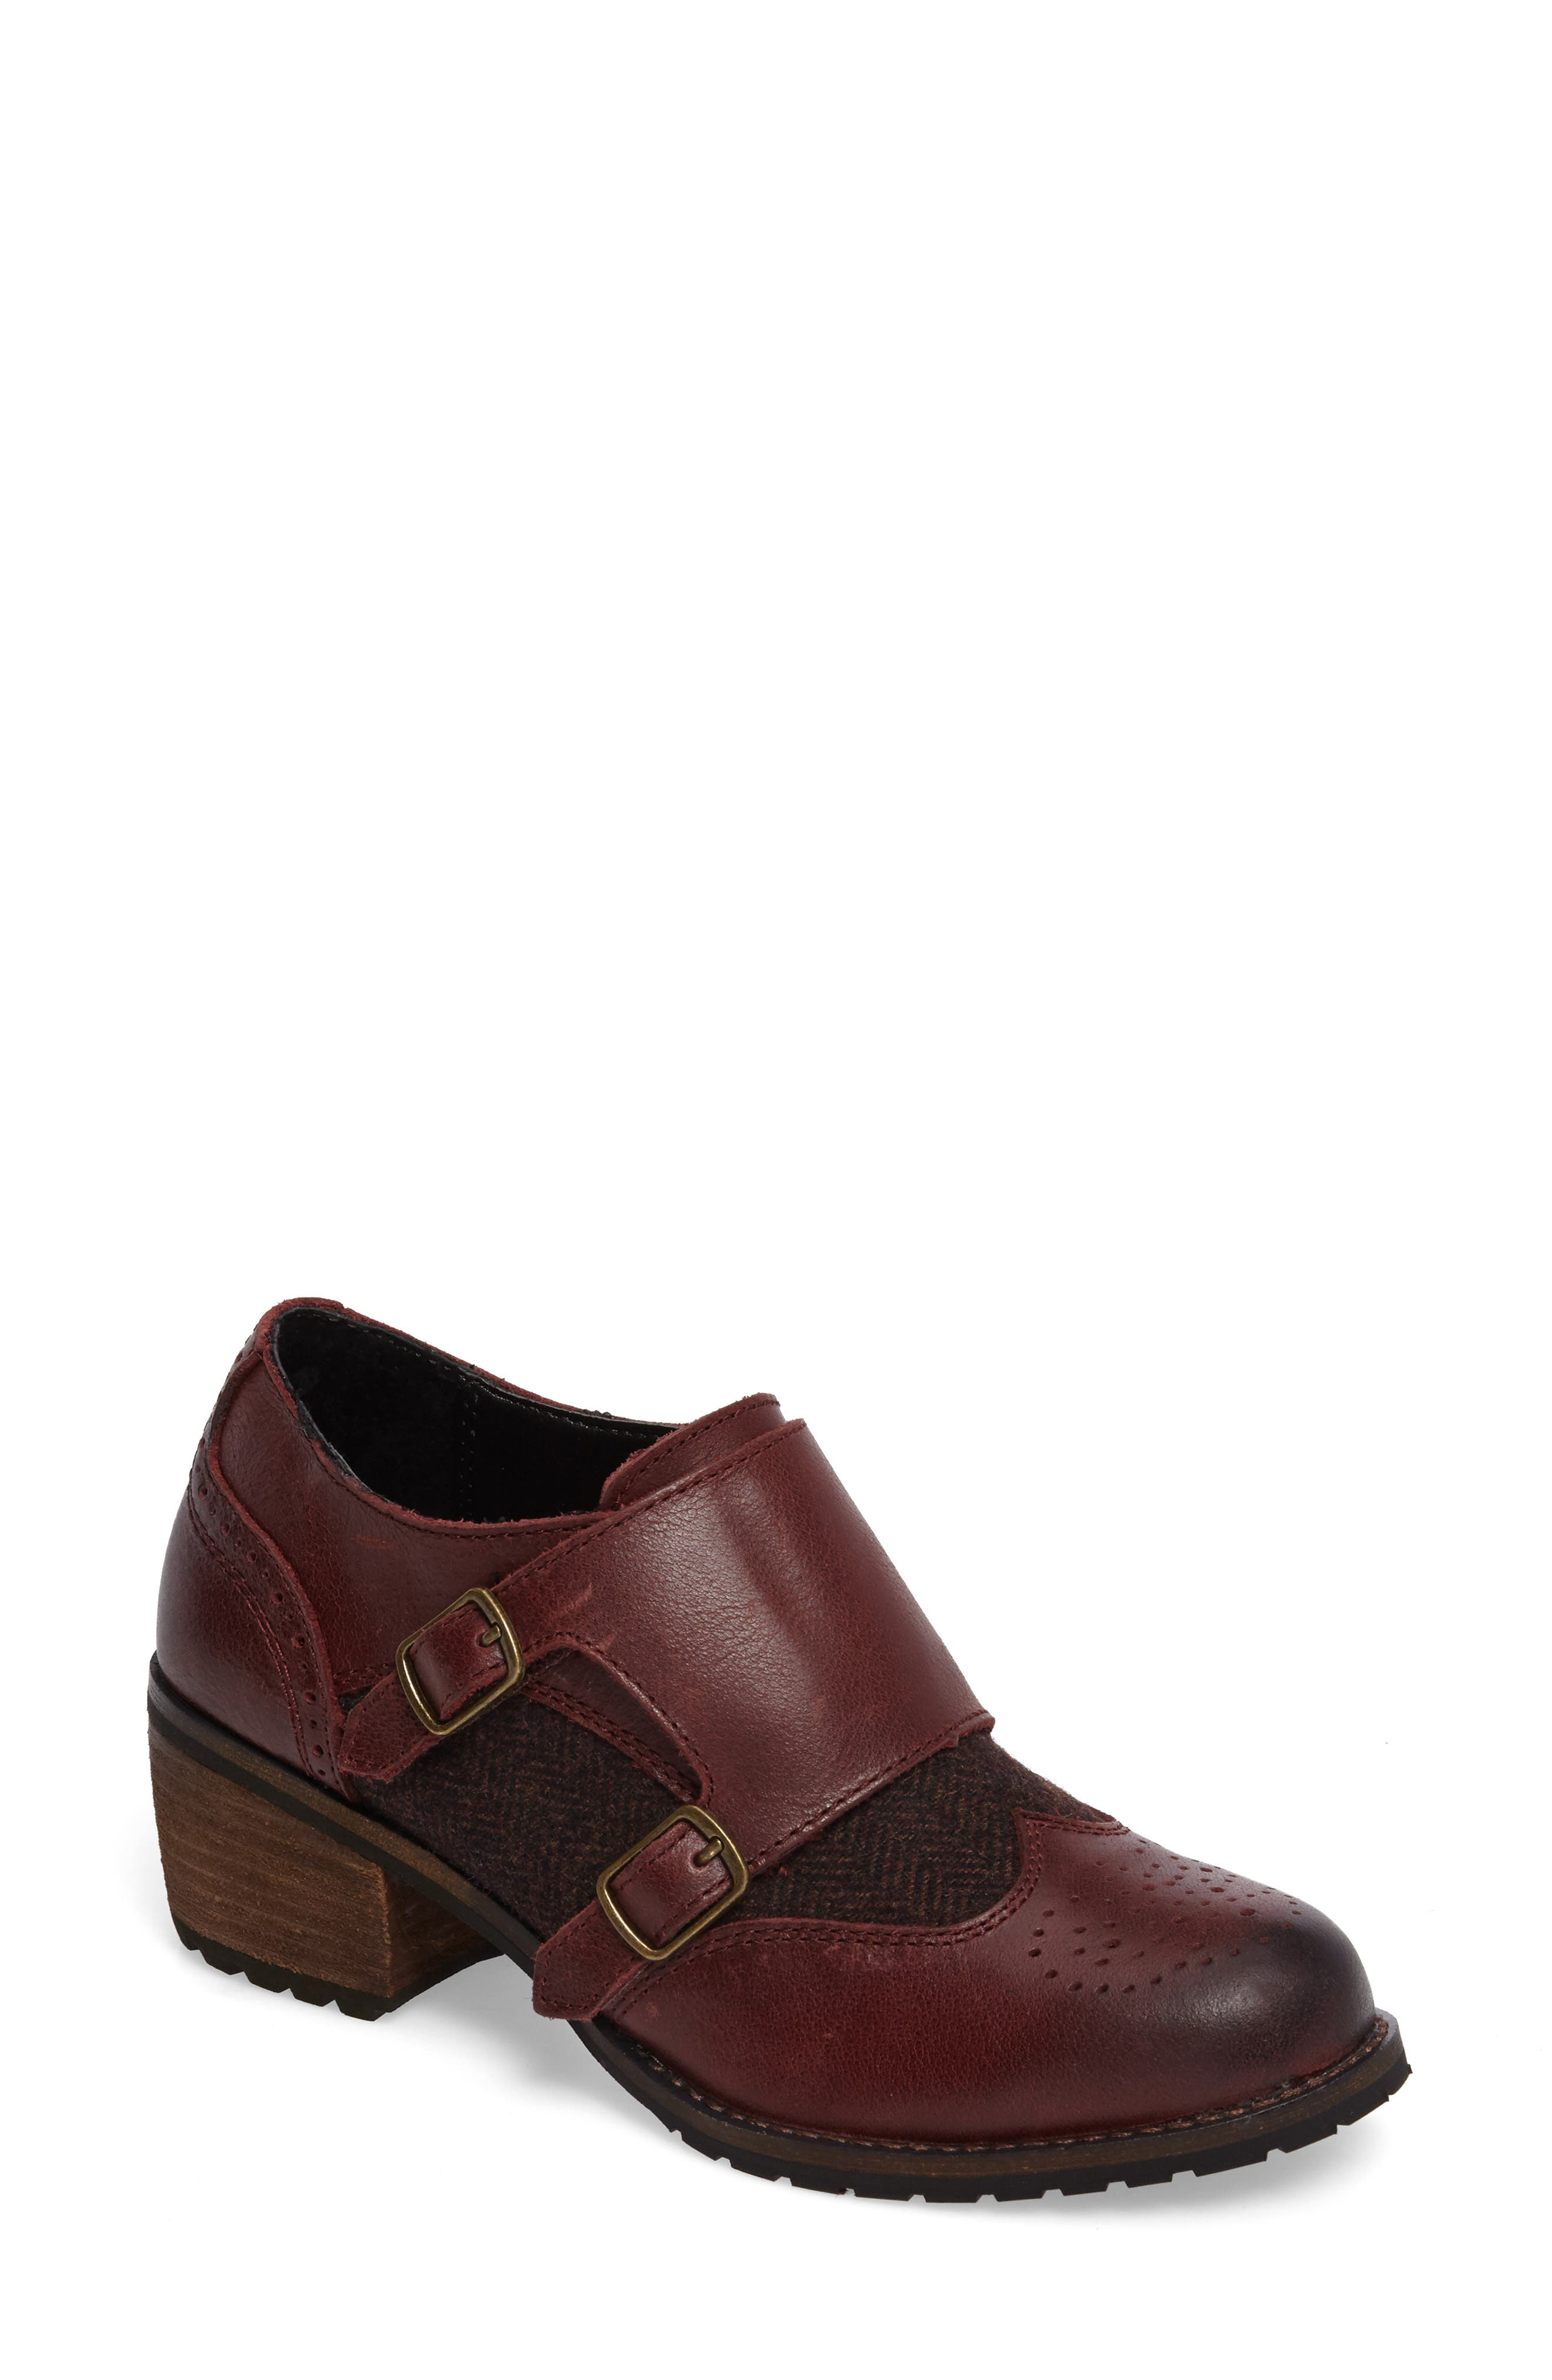 Dina Double Monk Strap Ankle Boot,                         Main,                         color, Merlot Leather